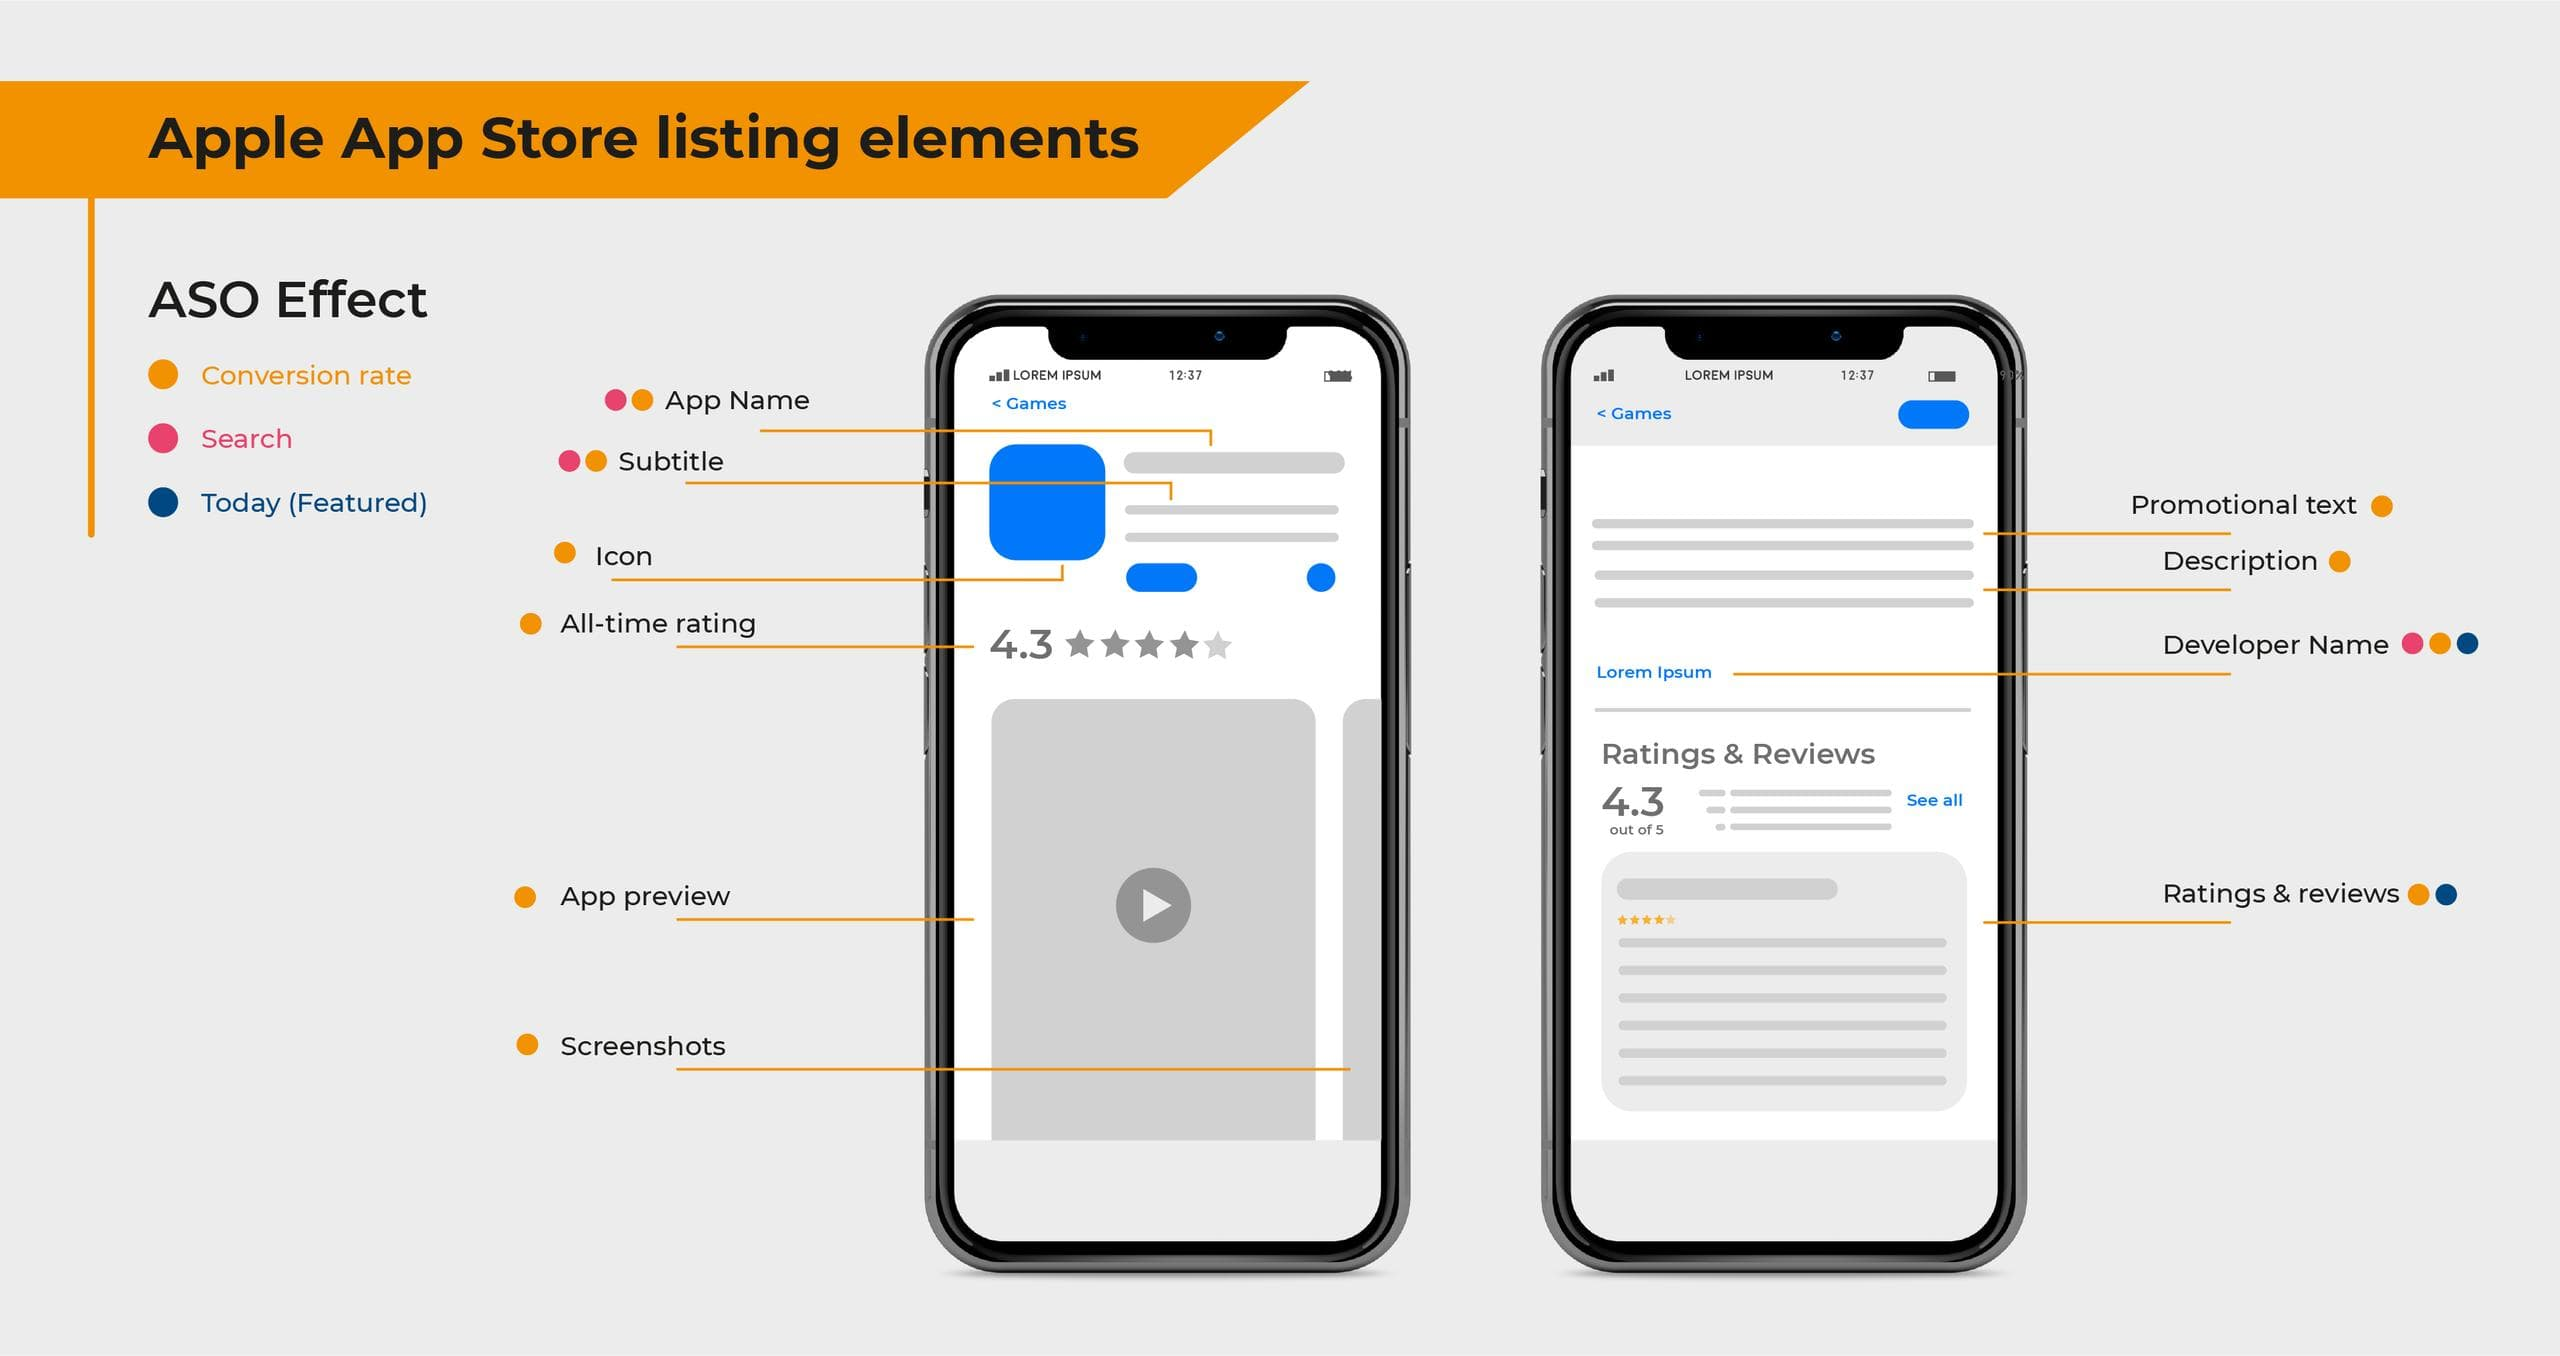 Apple App Store Listing Elements